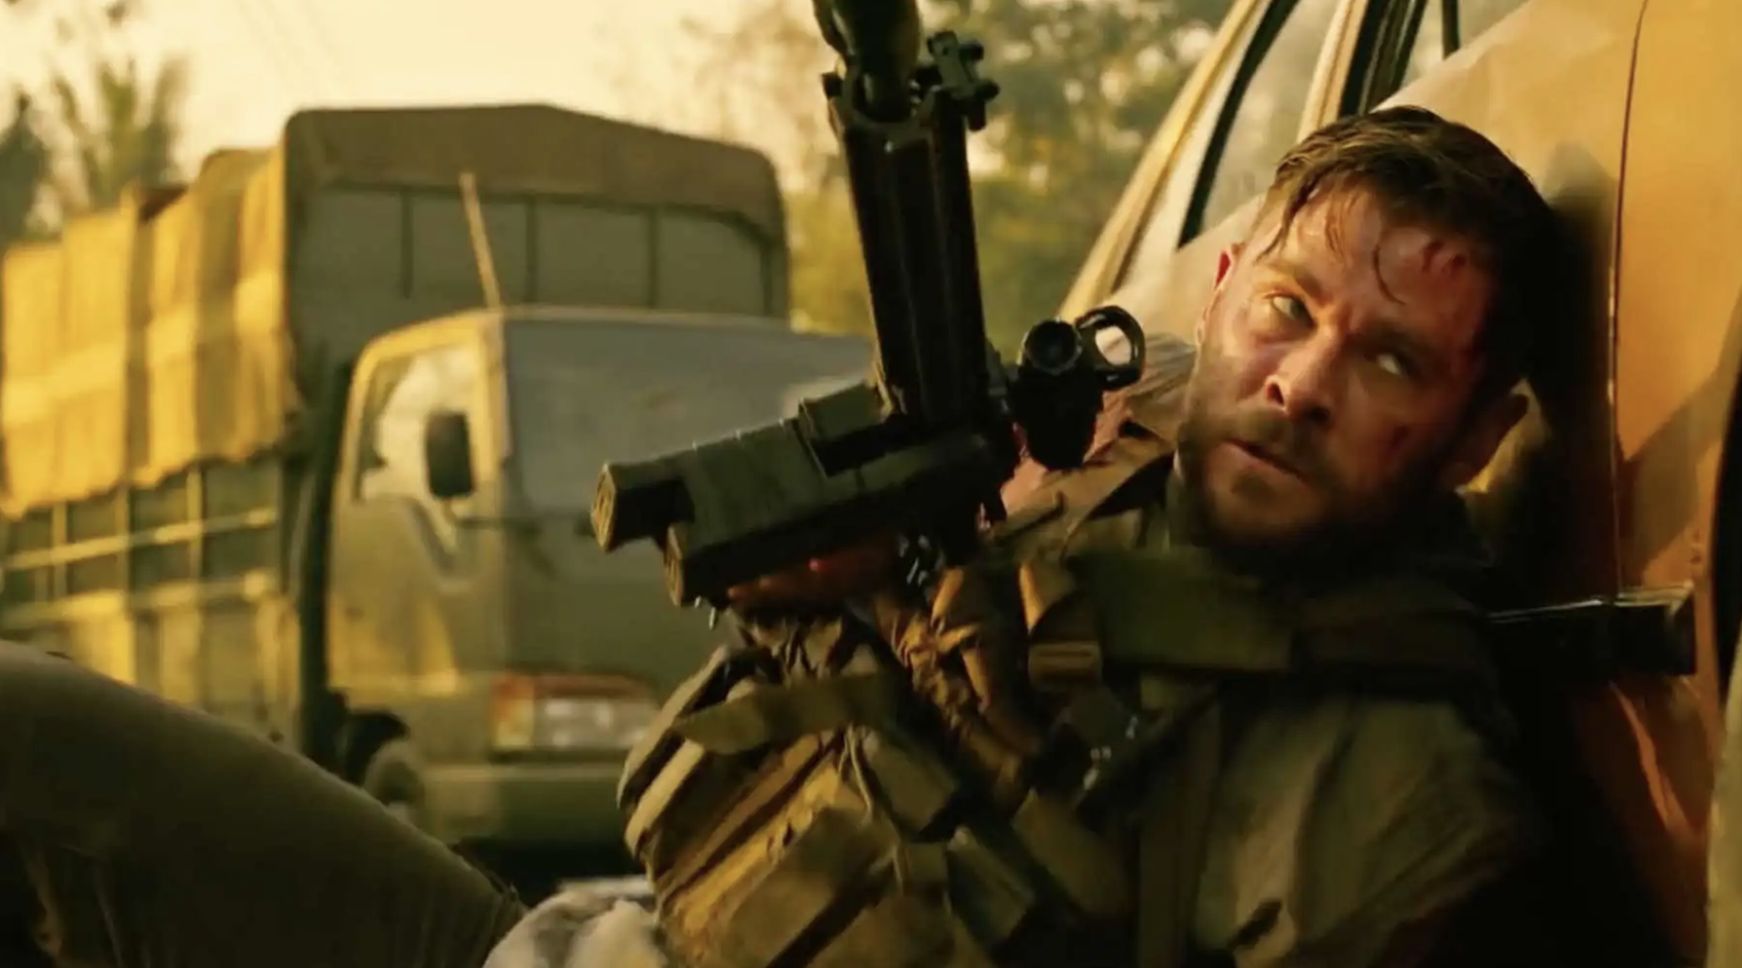 Chris Hemswork holding a gun in a scene set in Mexico with a yellow atmospheric filter